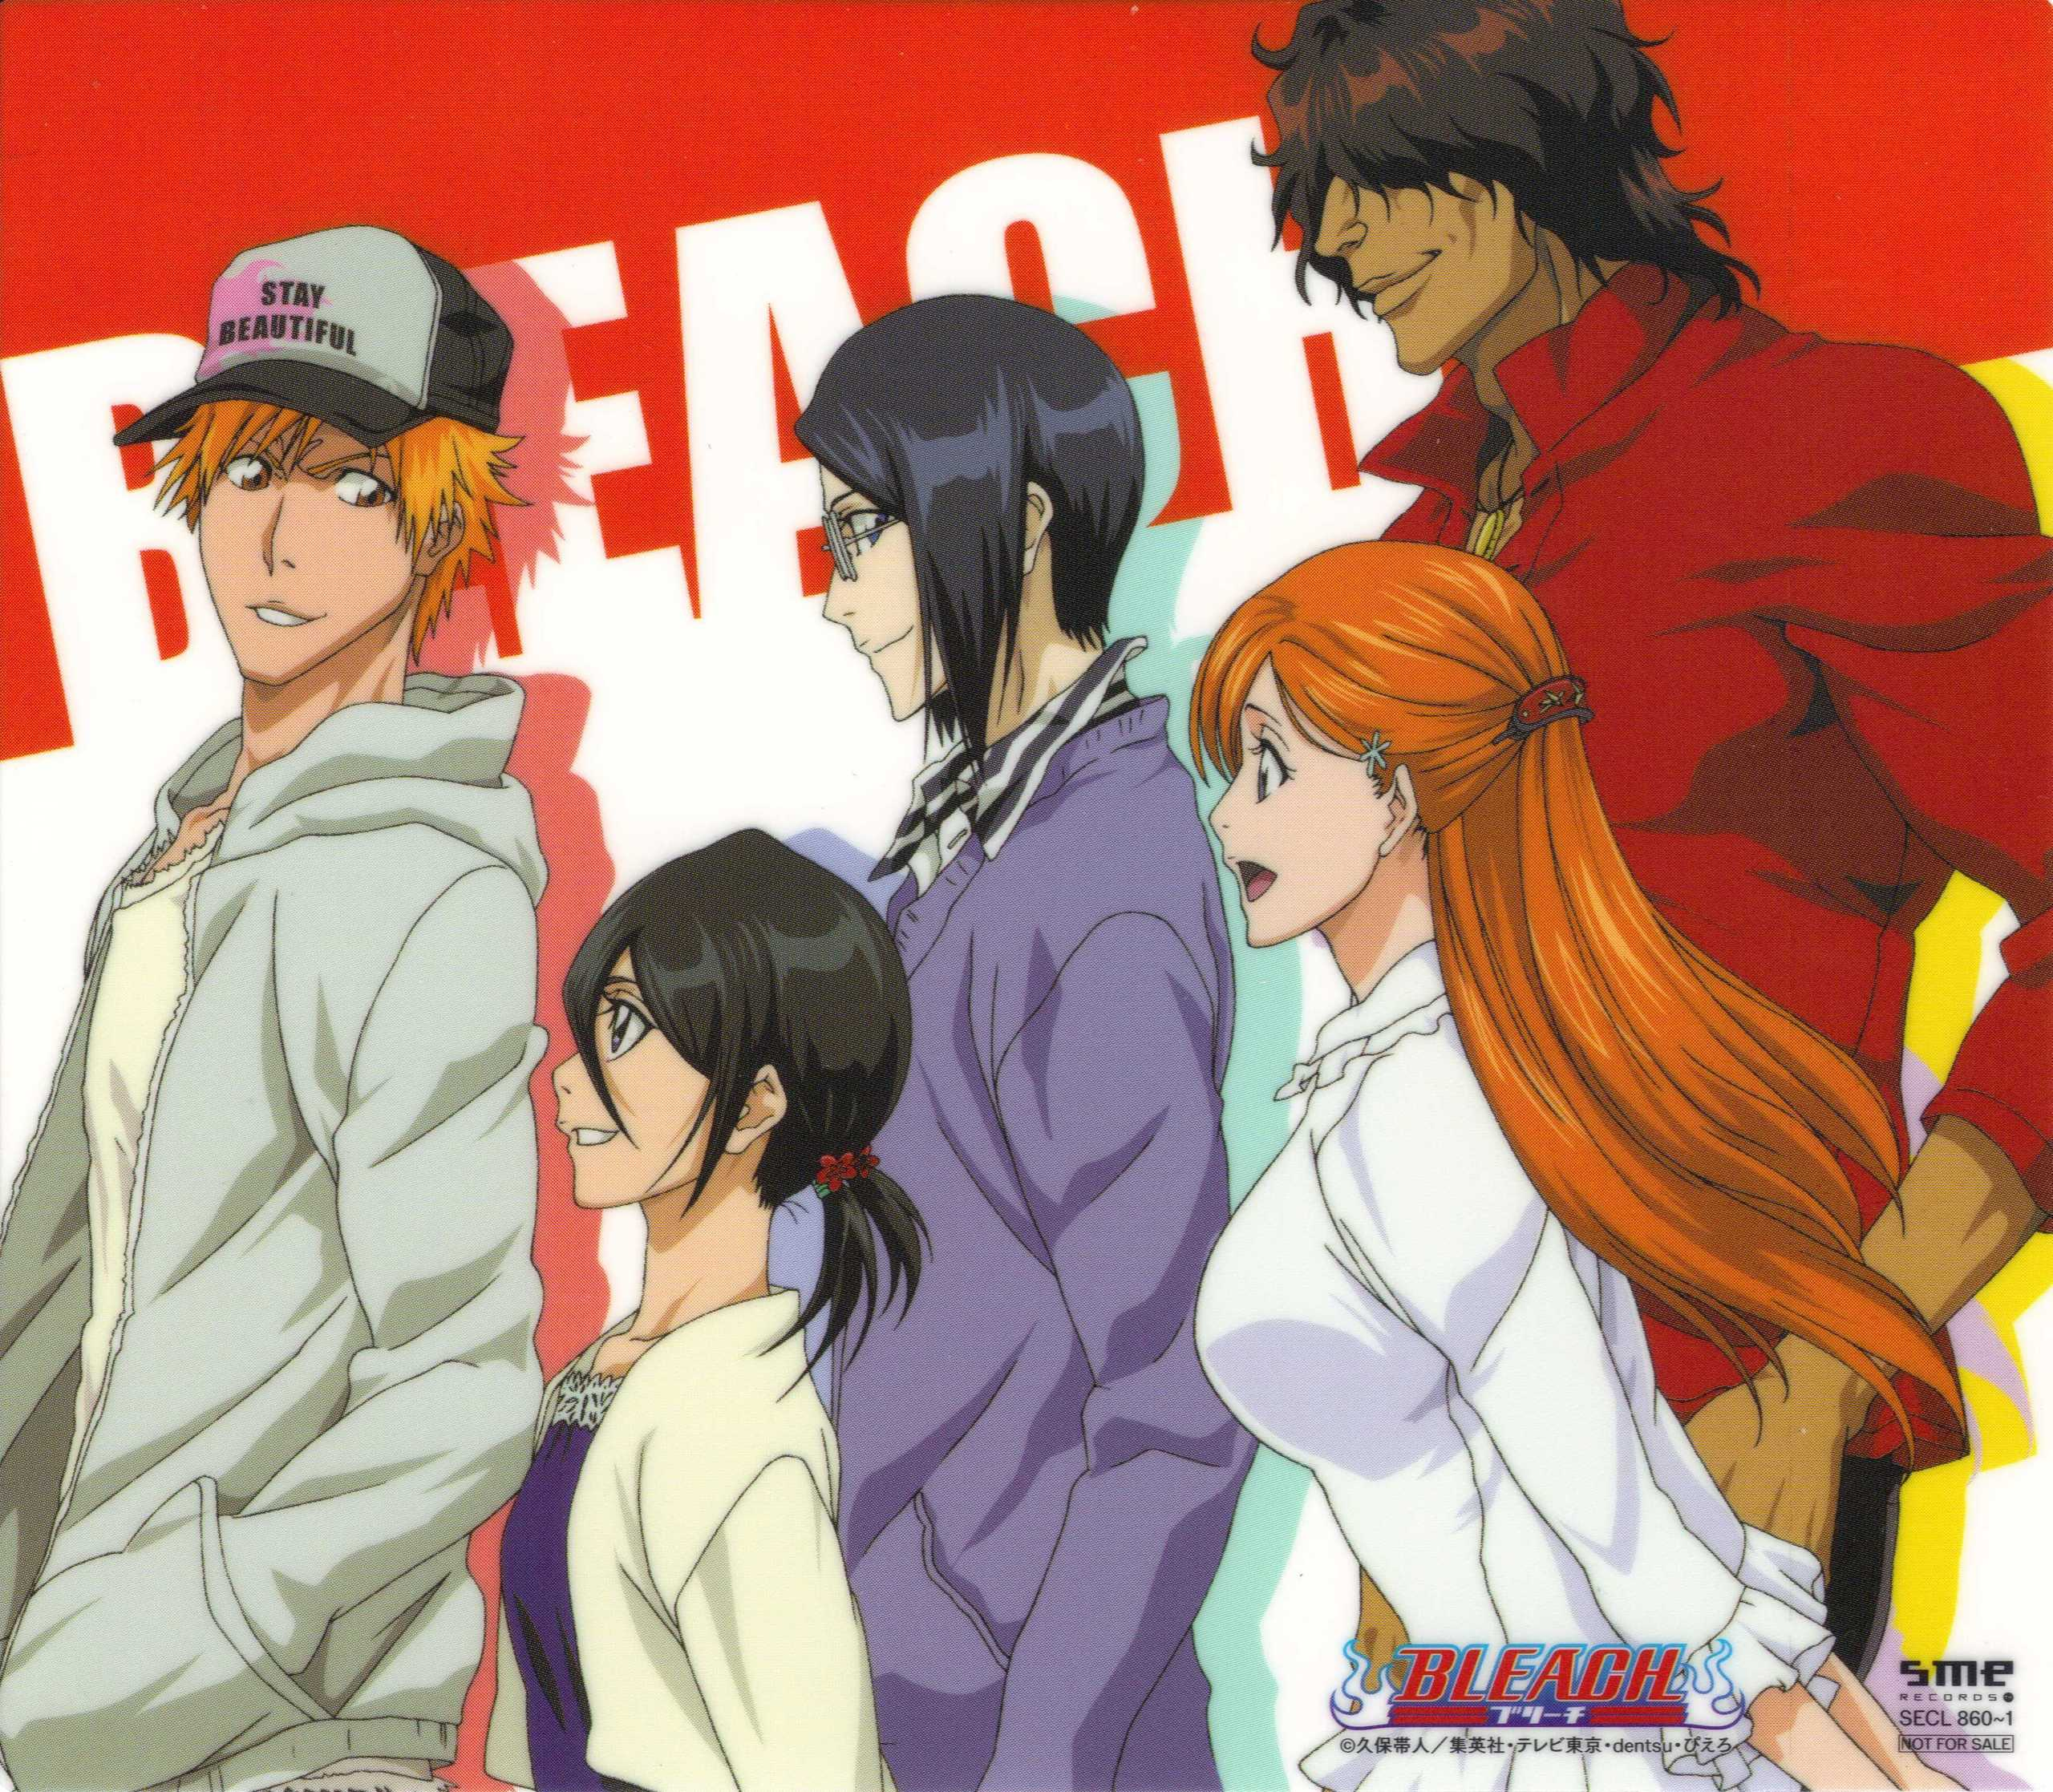 Bleach: Bleach group - Photo Colection